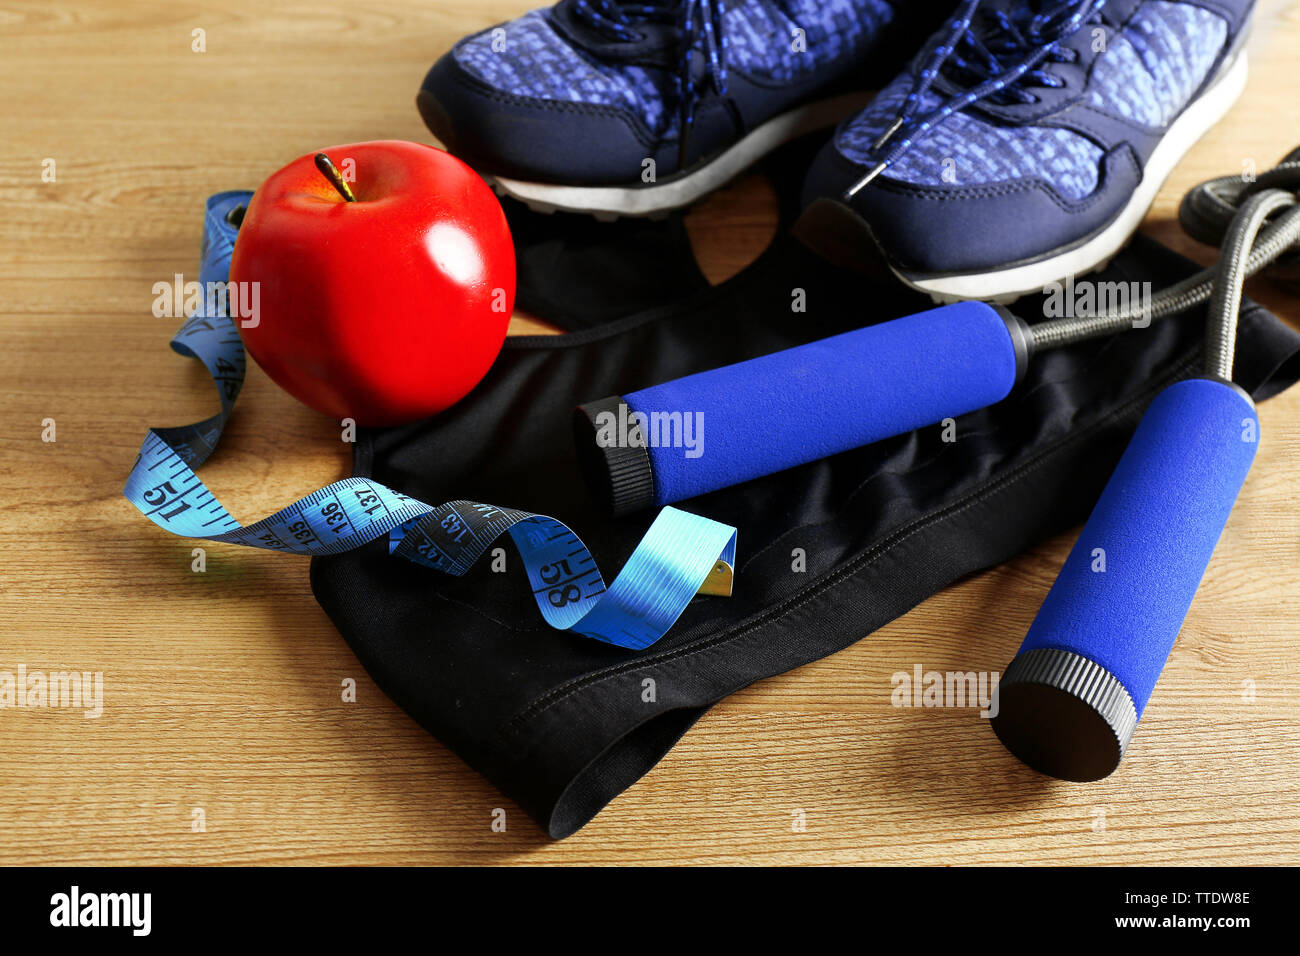 Sport shoes, clothes, equipment on light background - Stock Image